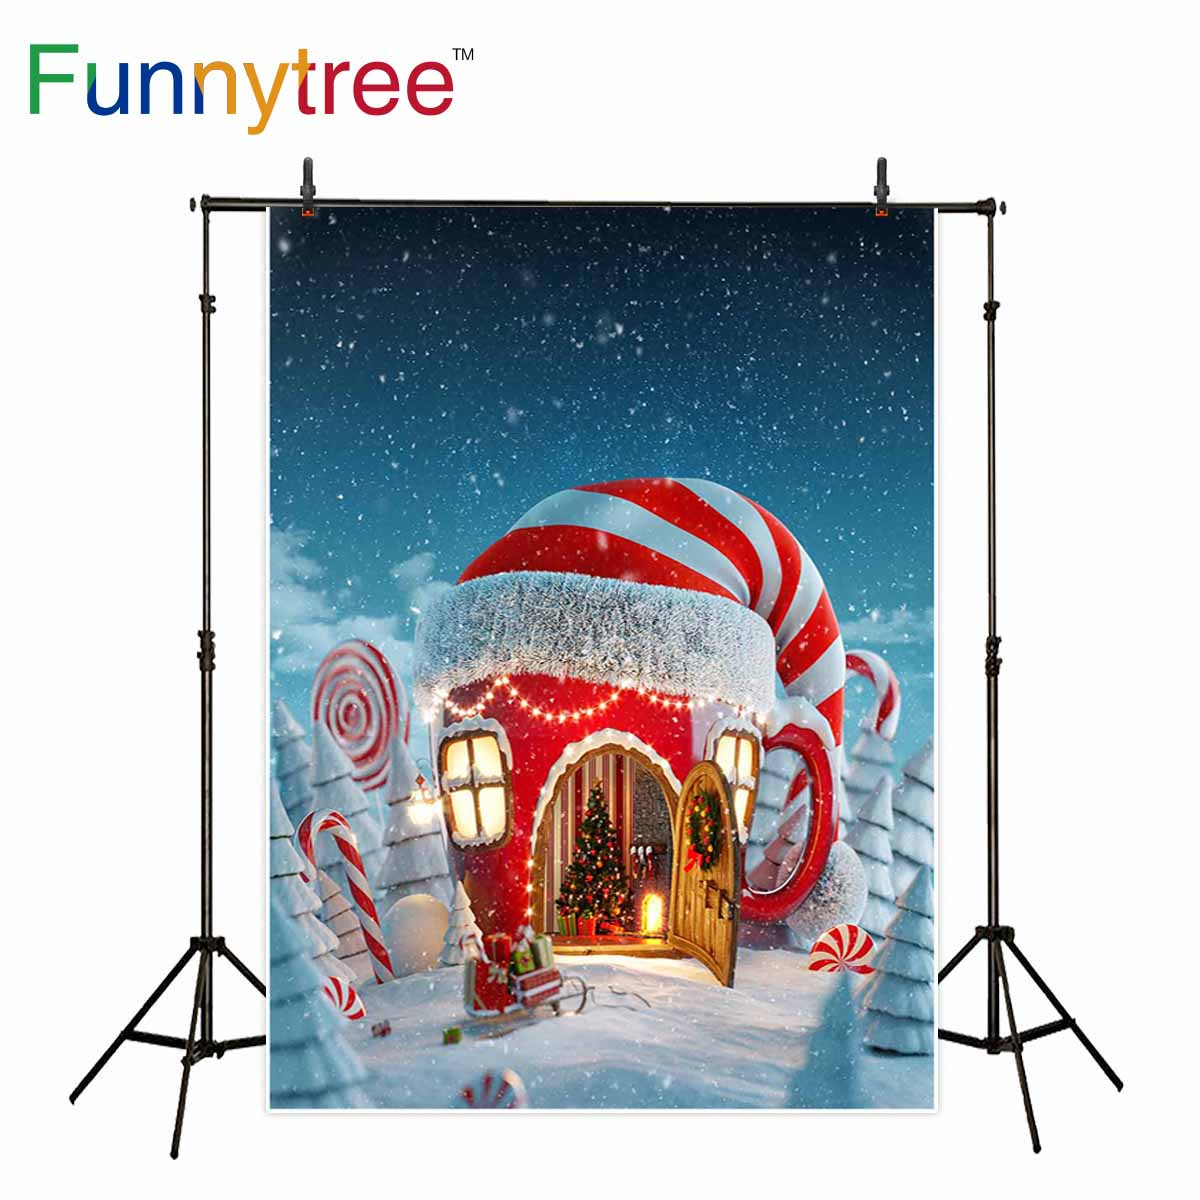 Funnytree backdrop for photo studio Christmas candy canes house winter snow fariy tale kids photography background photocall kate digital printing house under snow photography studio backdrop dreamlike background kate background backdrop